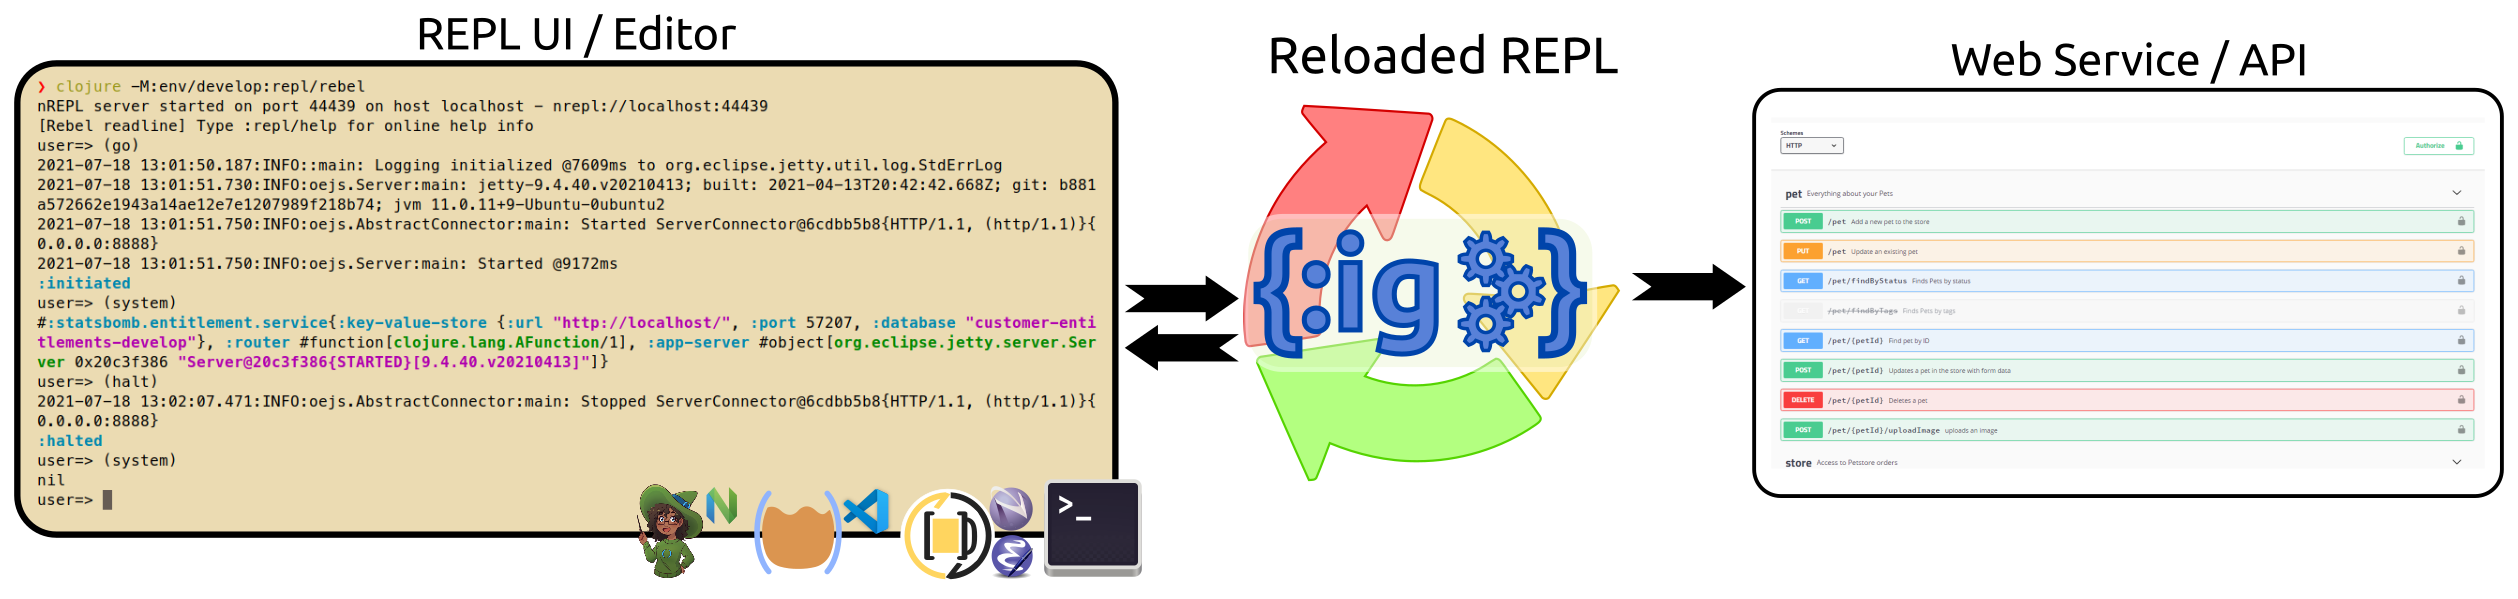 Reloaded REPL with Integrant REPL